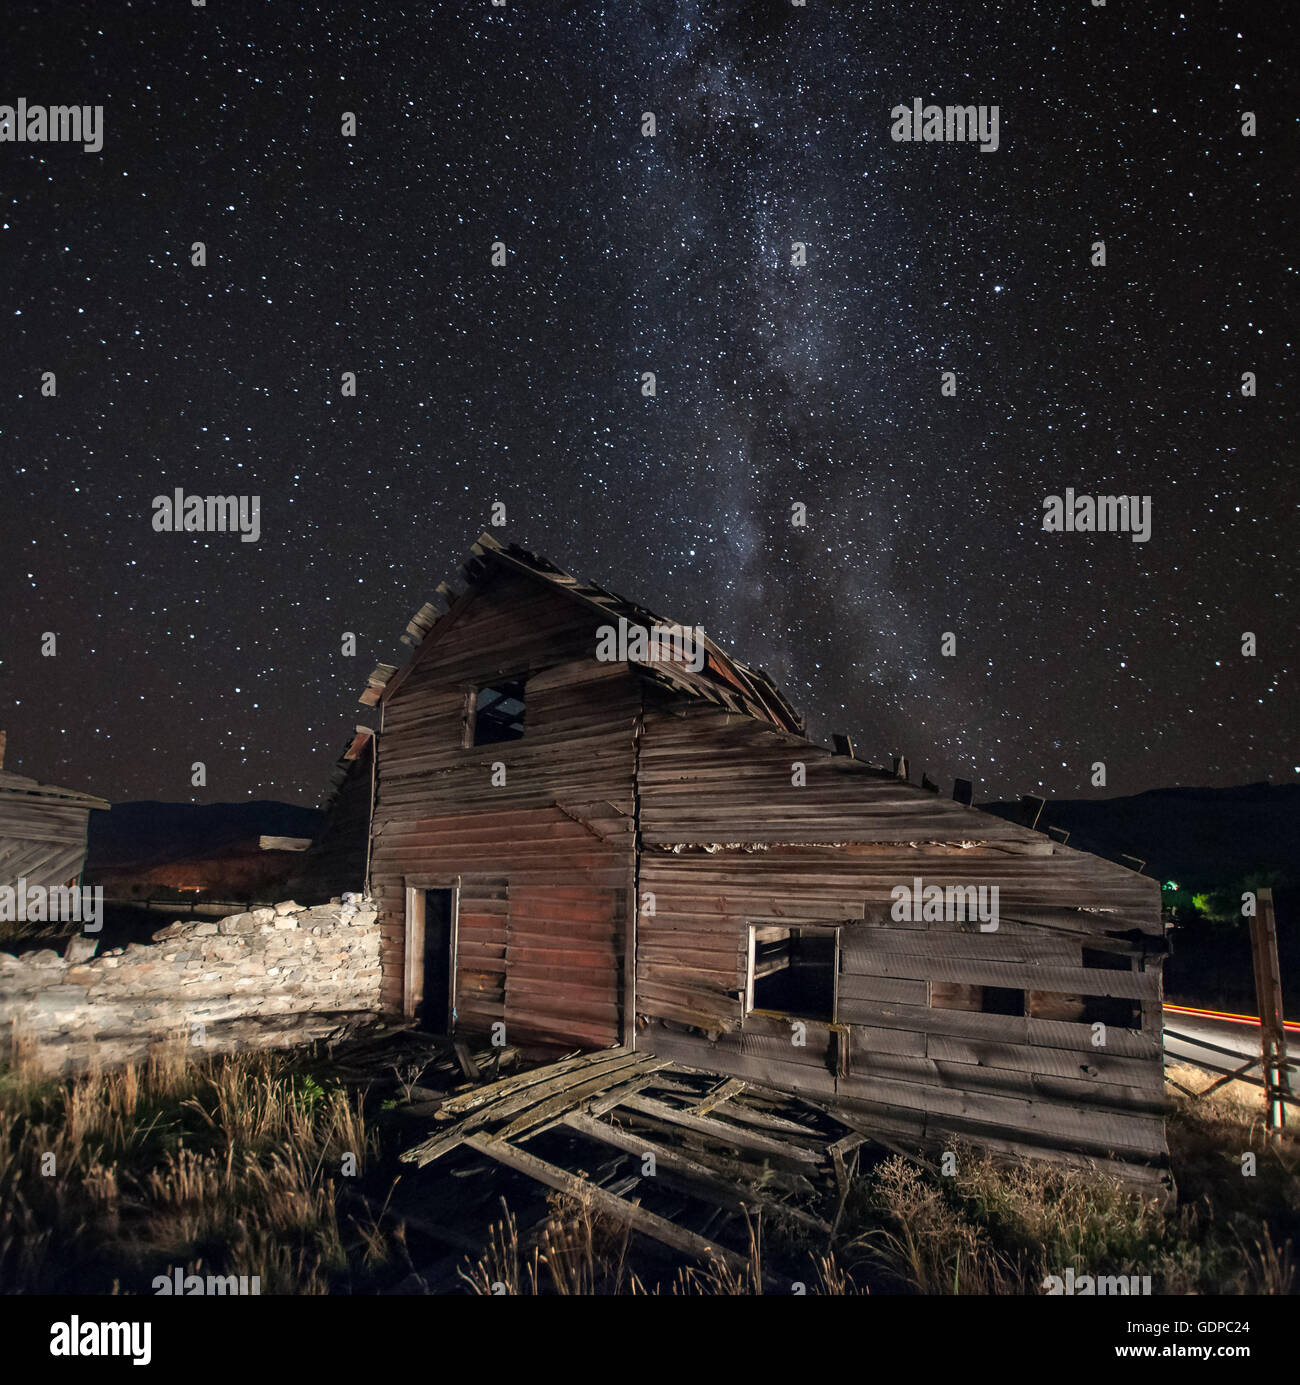 Milky way, haynes ranch buildings preservation project, Oliver, British Columbia, Canada - Stock Image